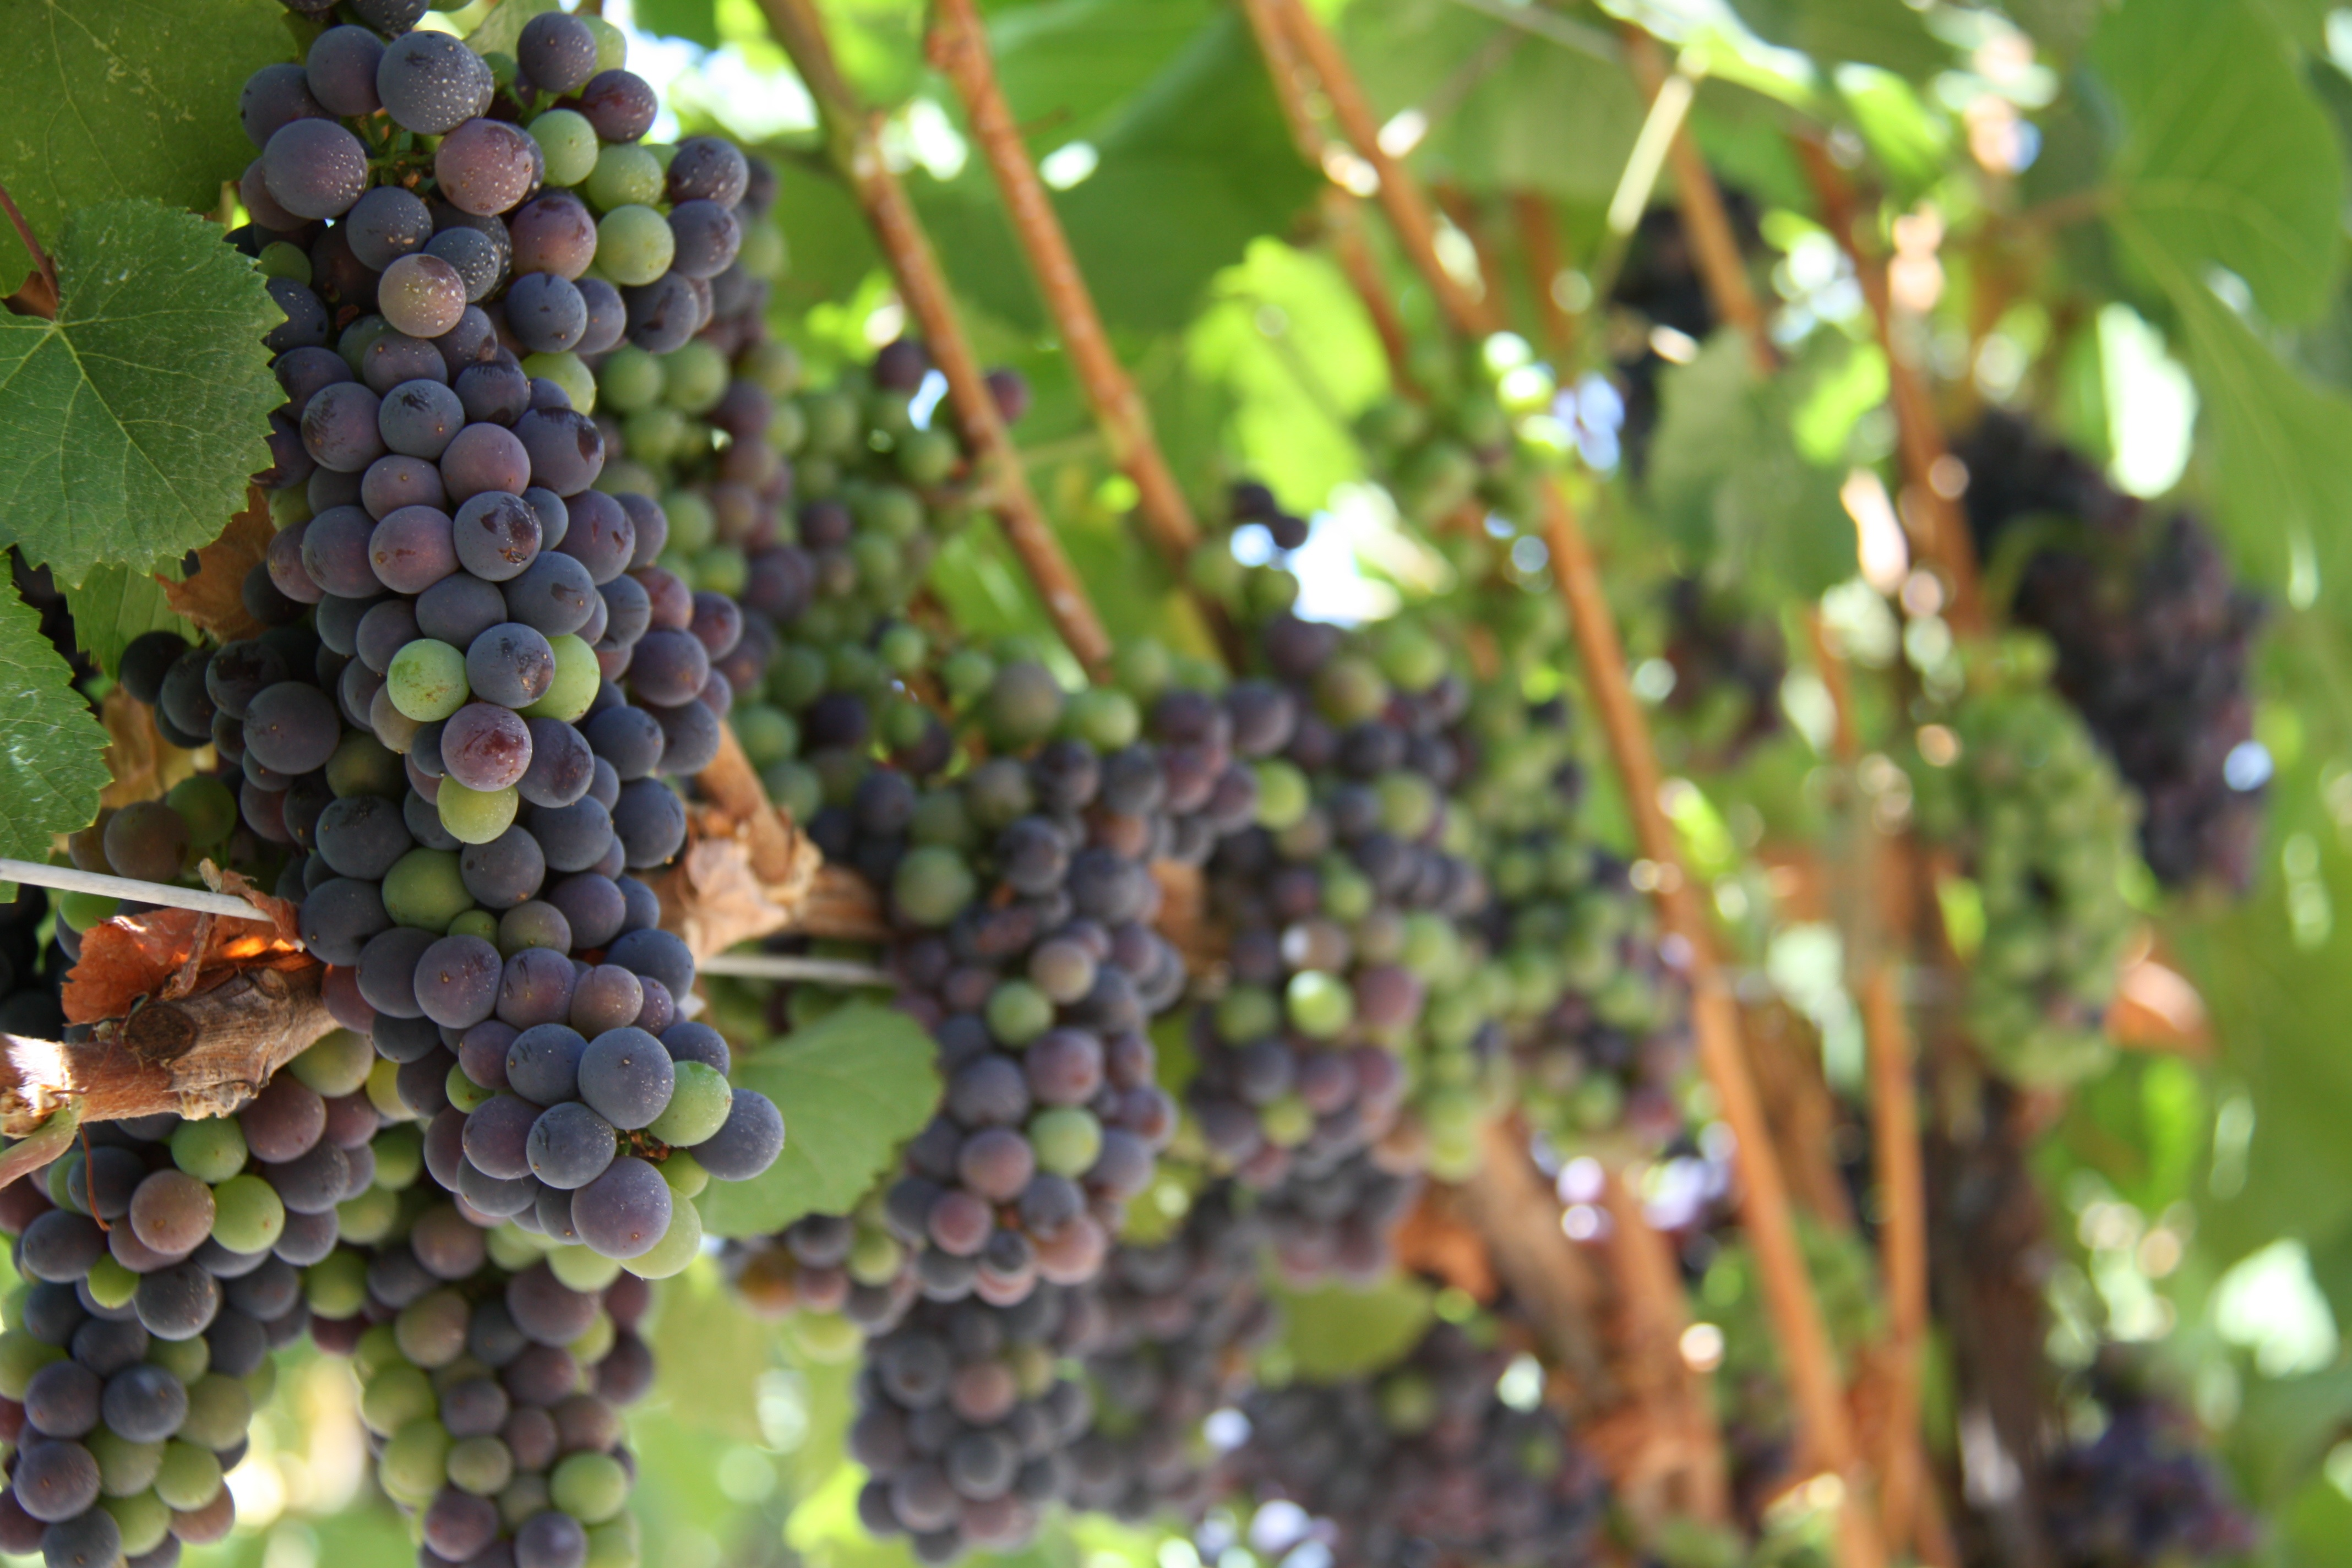 Grapes on vine in Wine Country